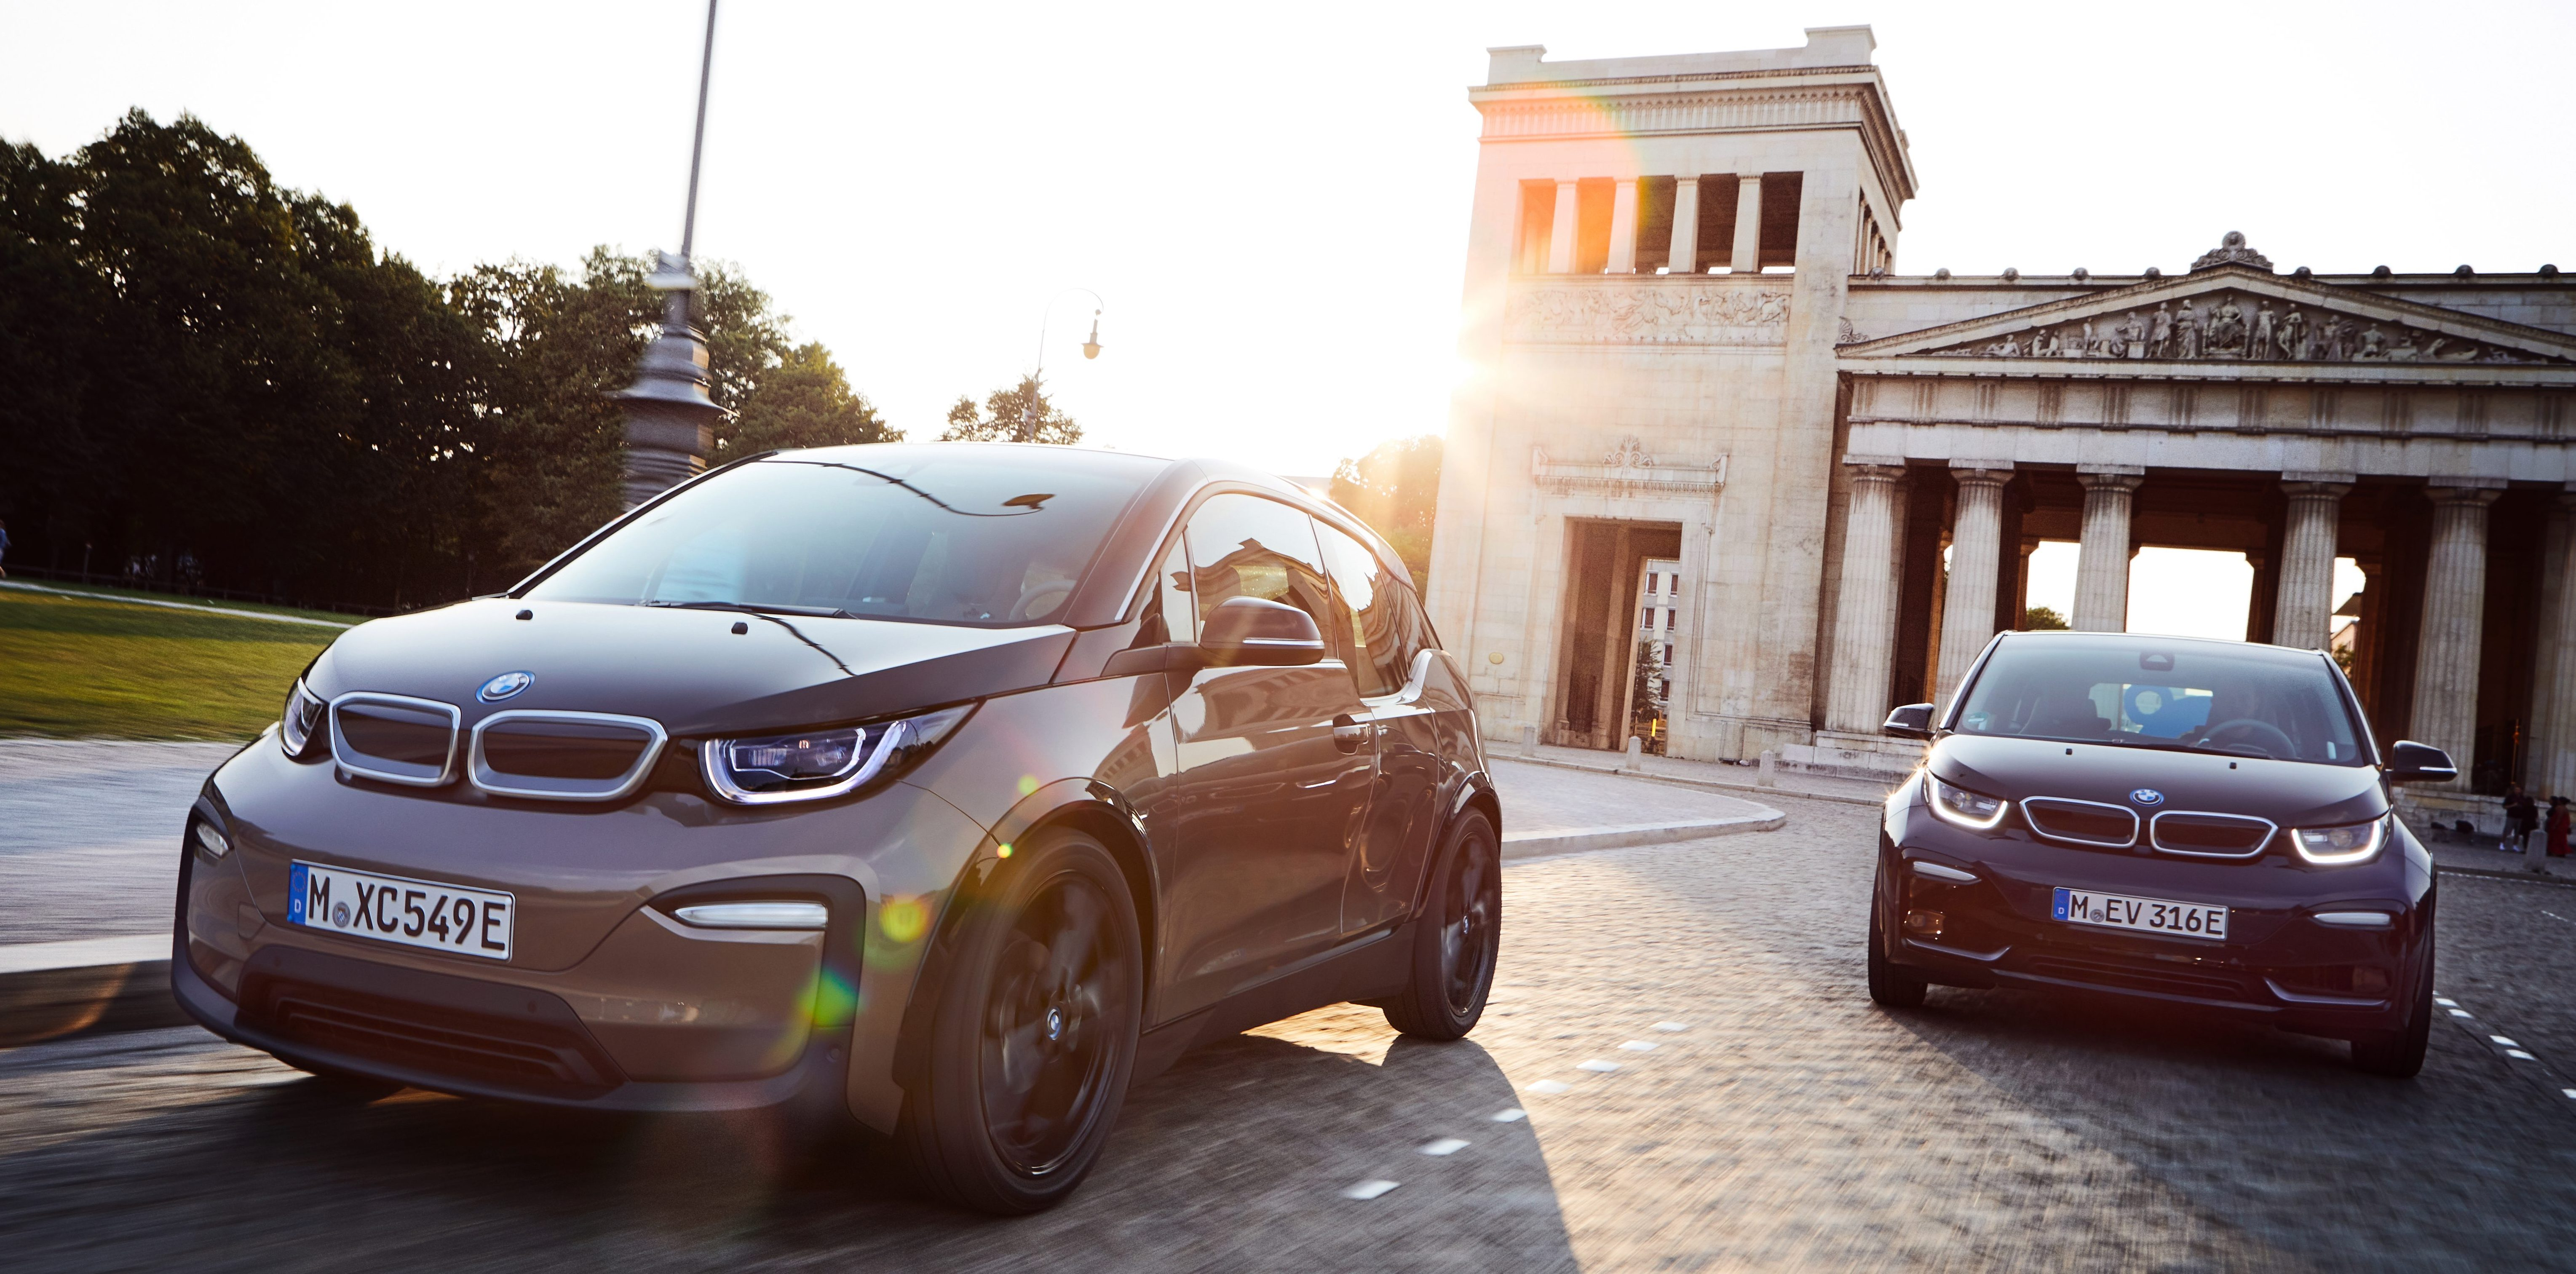 Bmw I3 Goes All Electric In Europe Due To Increased Battery Range